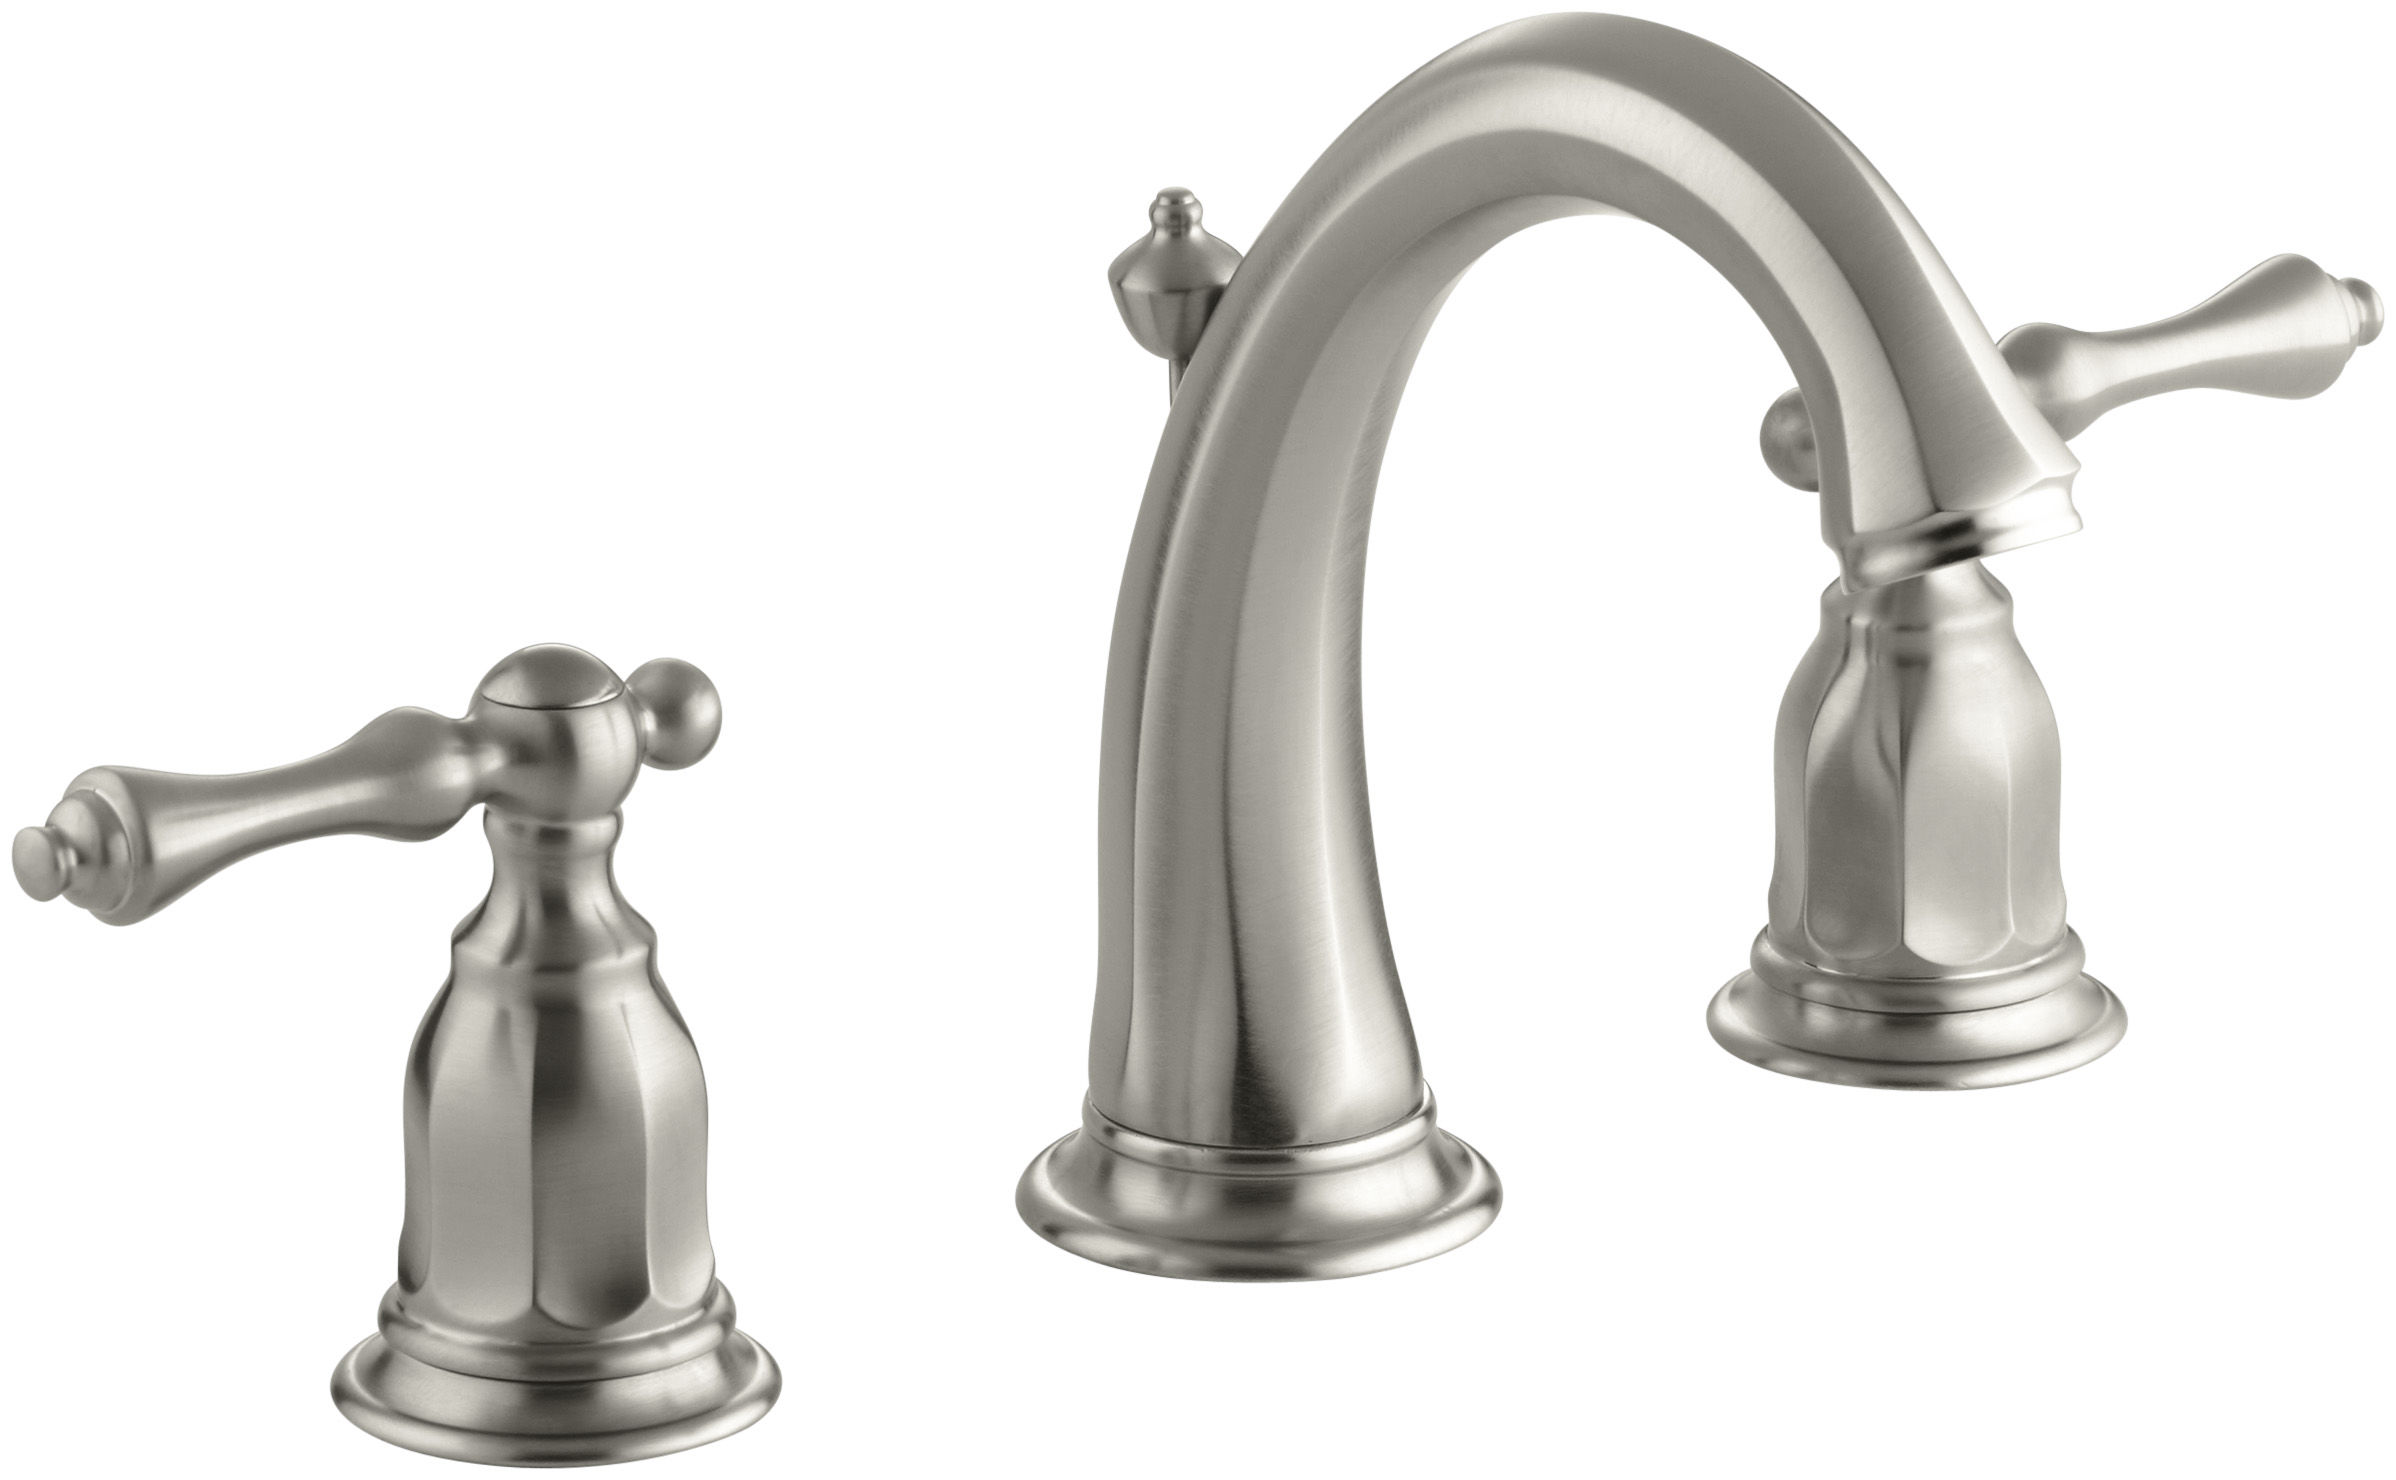 faucets polished contemporary fau faucet bathroom nickel pni sink aqua modern